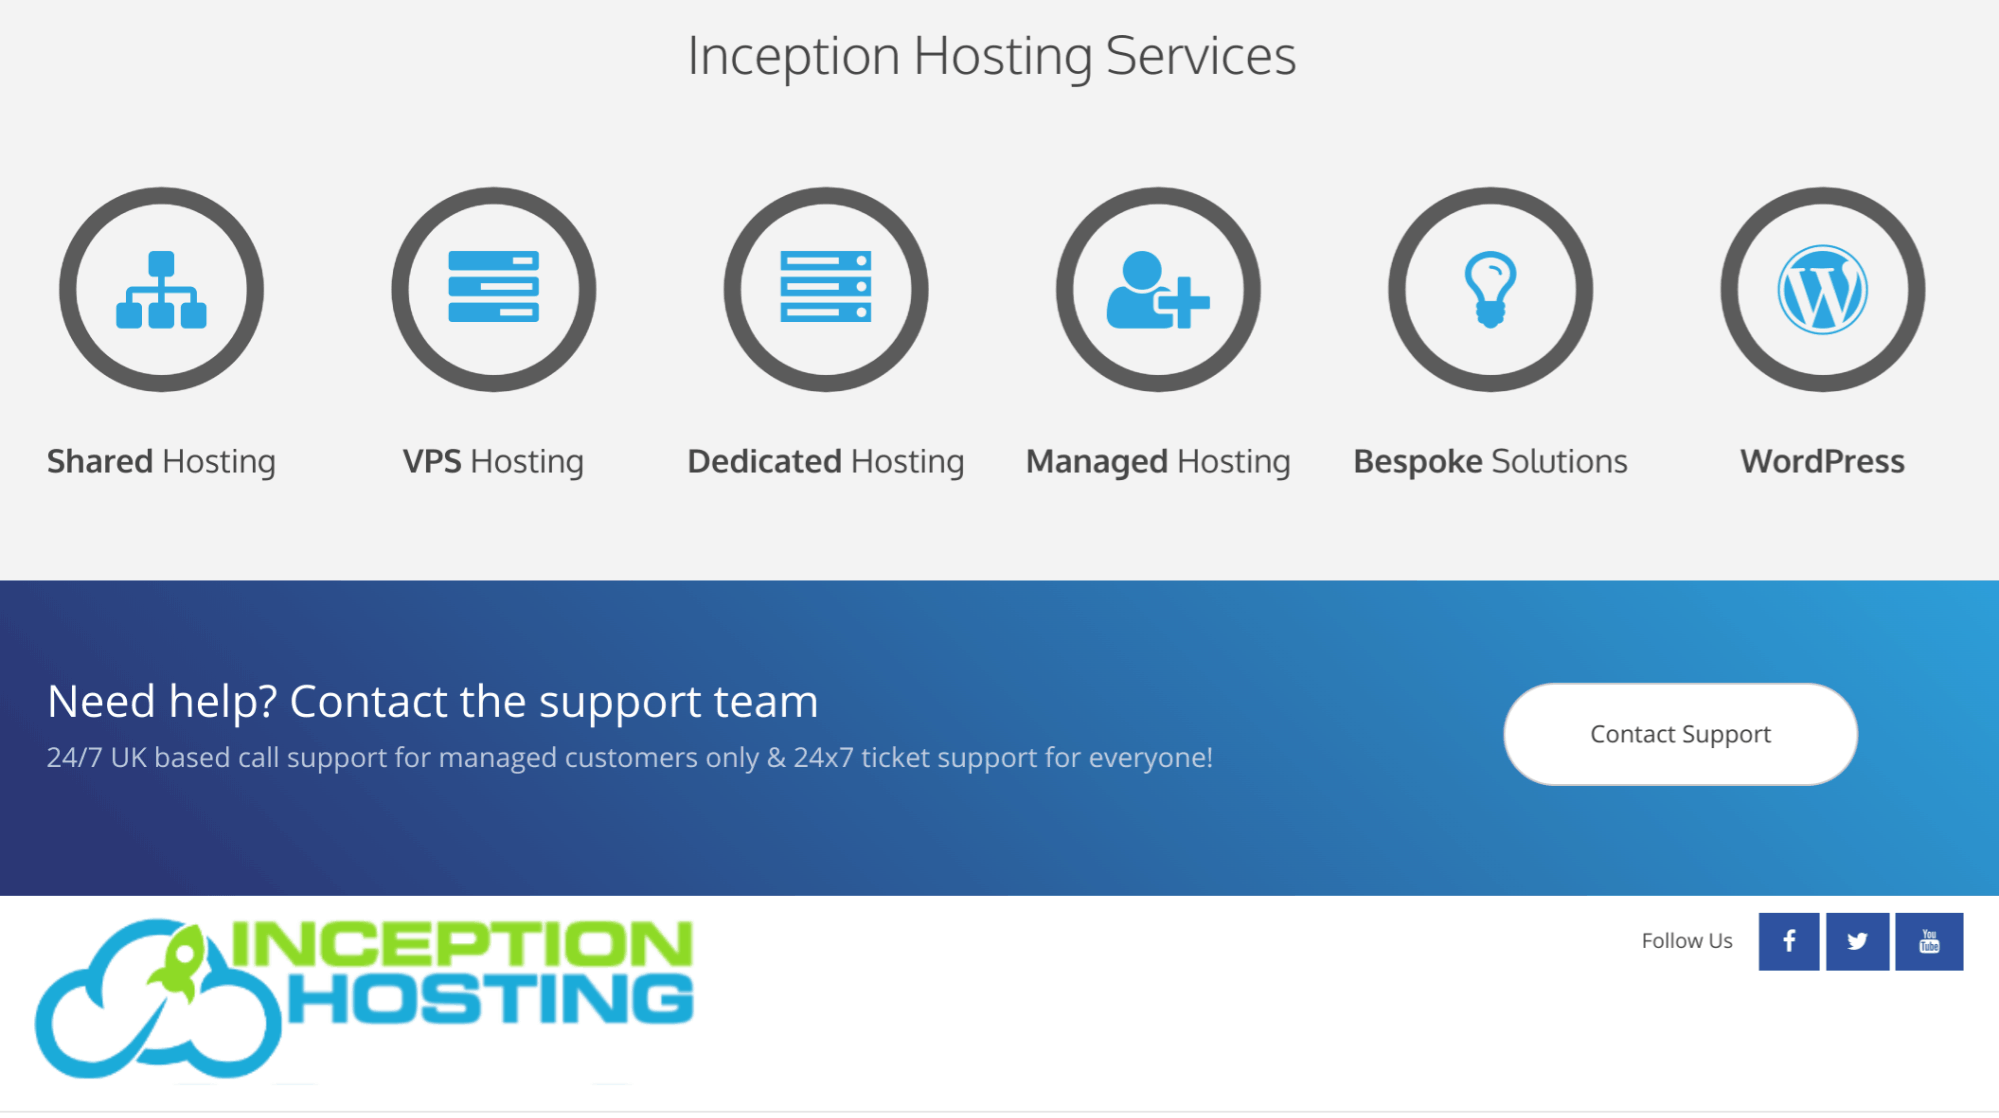 Inception Hosting